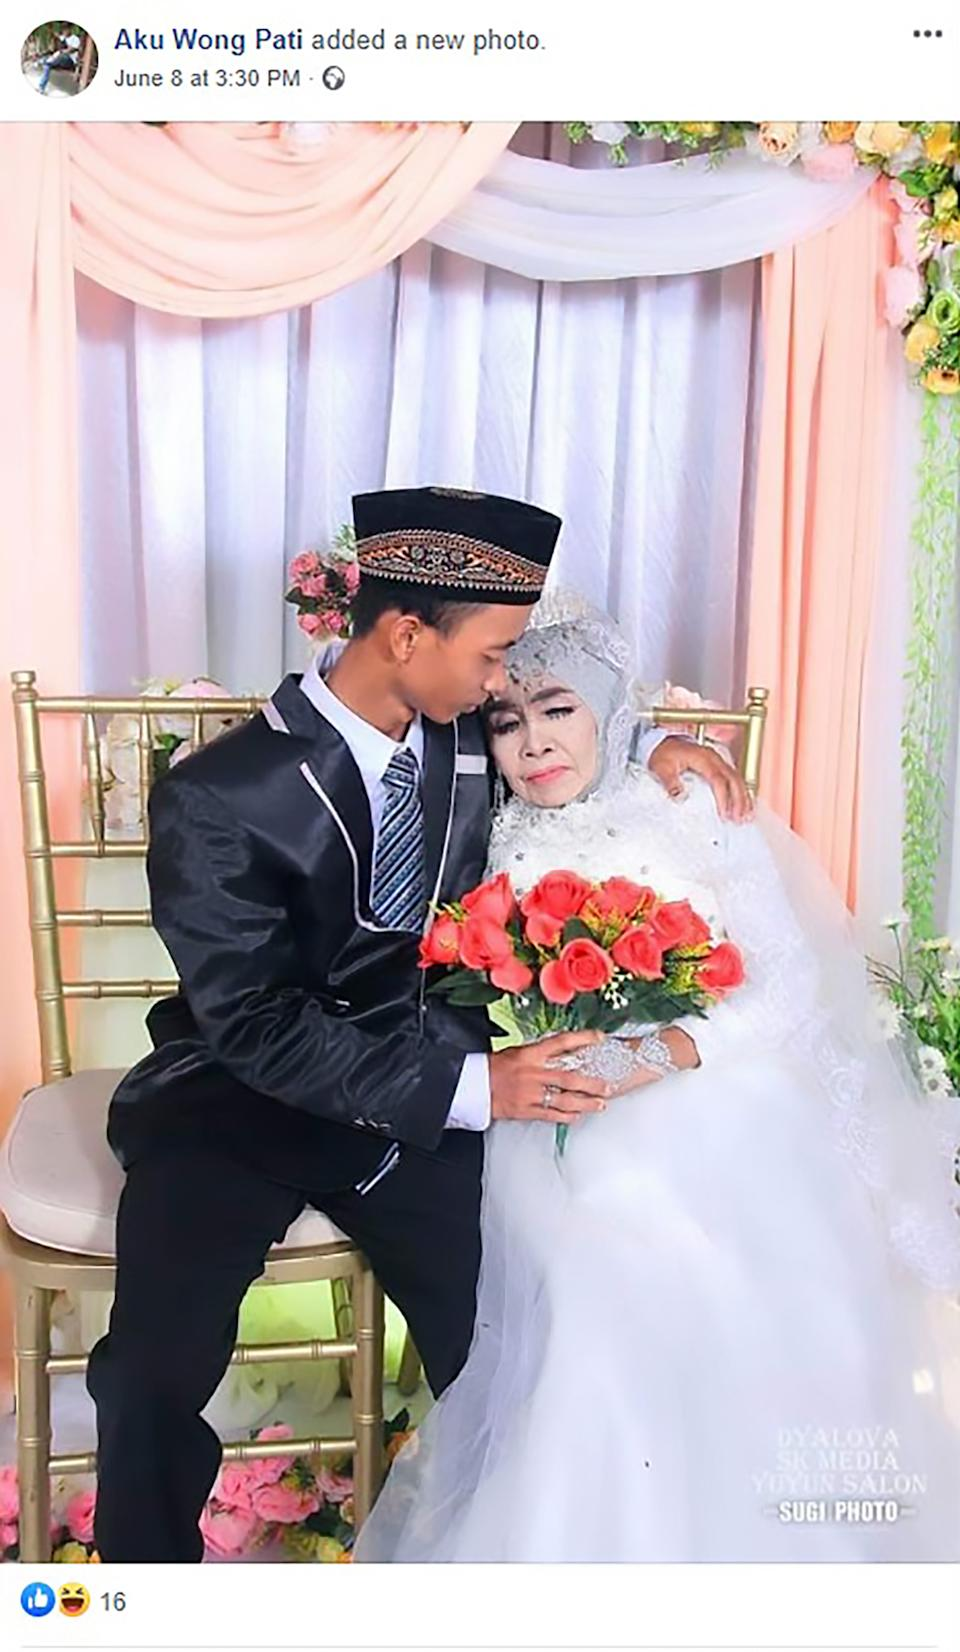 Mbah Gambreng, 65, adopted Ardi Waras are seen on their wedding day. Source: CEN/Australscope